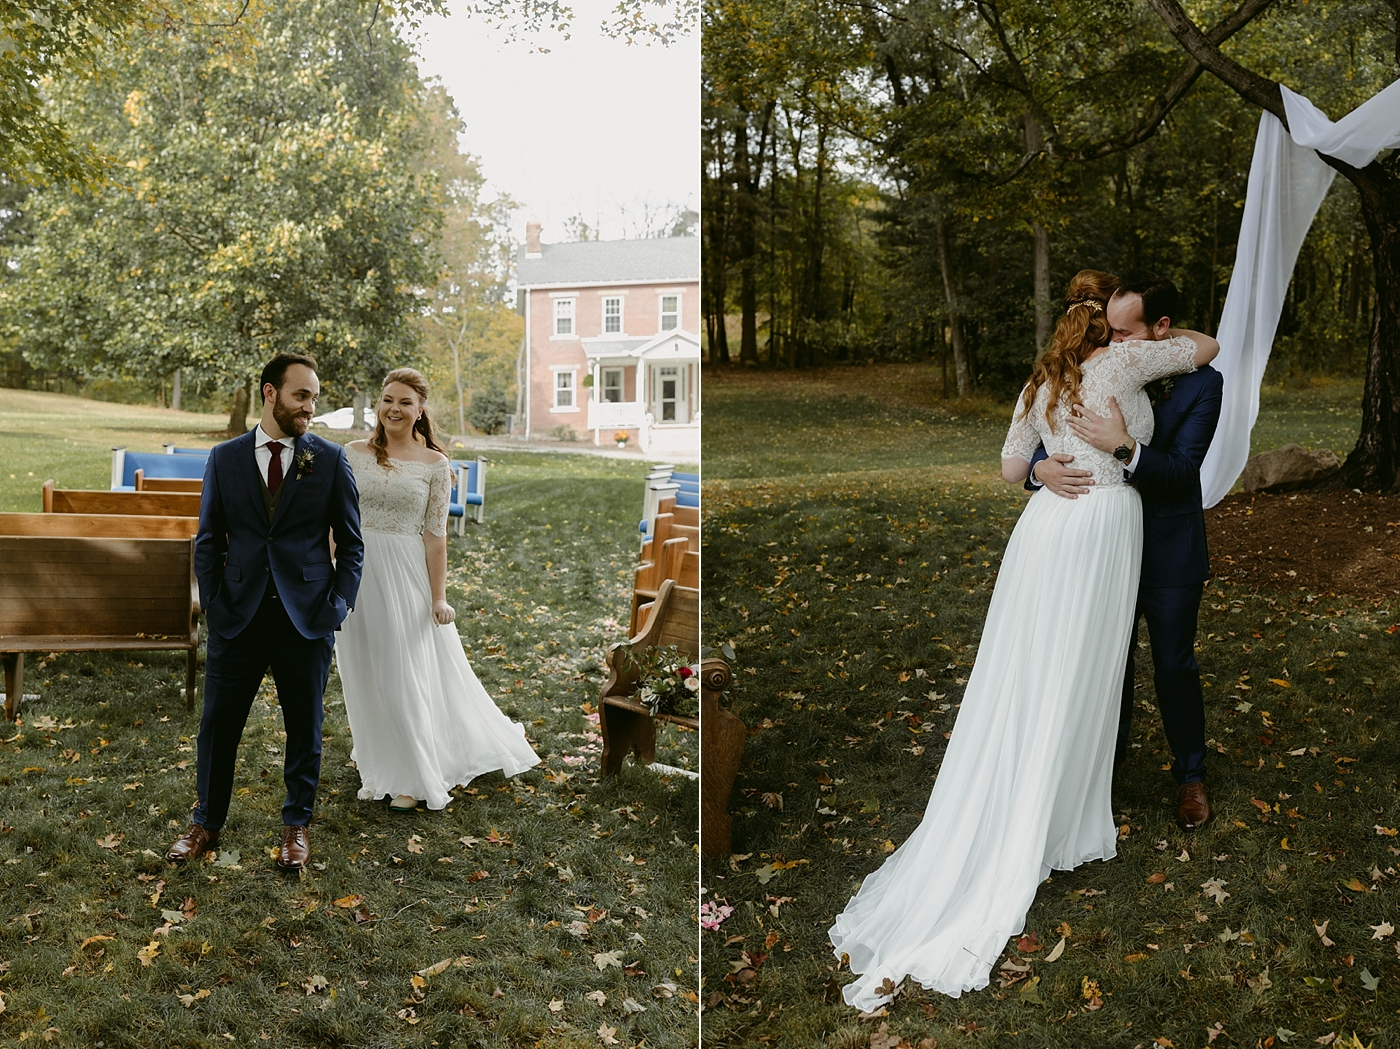 October-Backyard-Wedding_Rachel+Brian_MJPHOTO-175.jpg